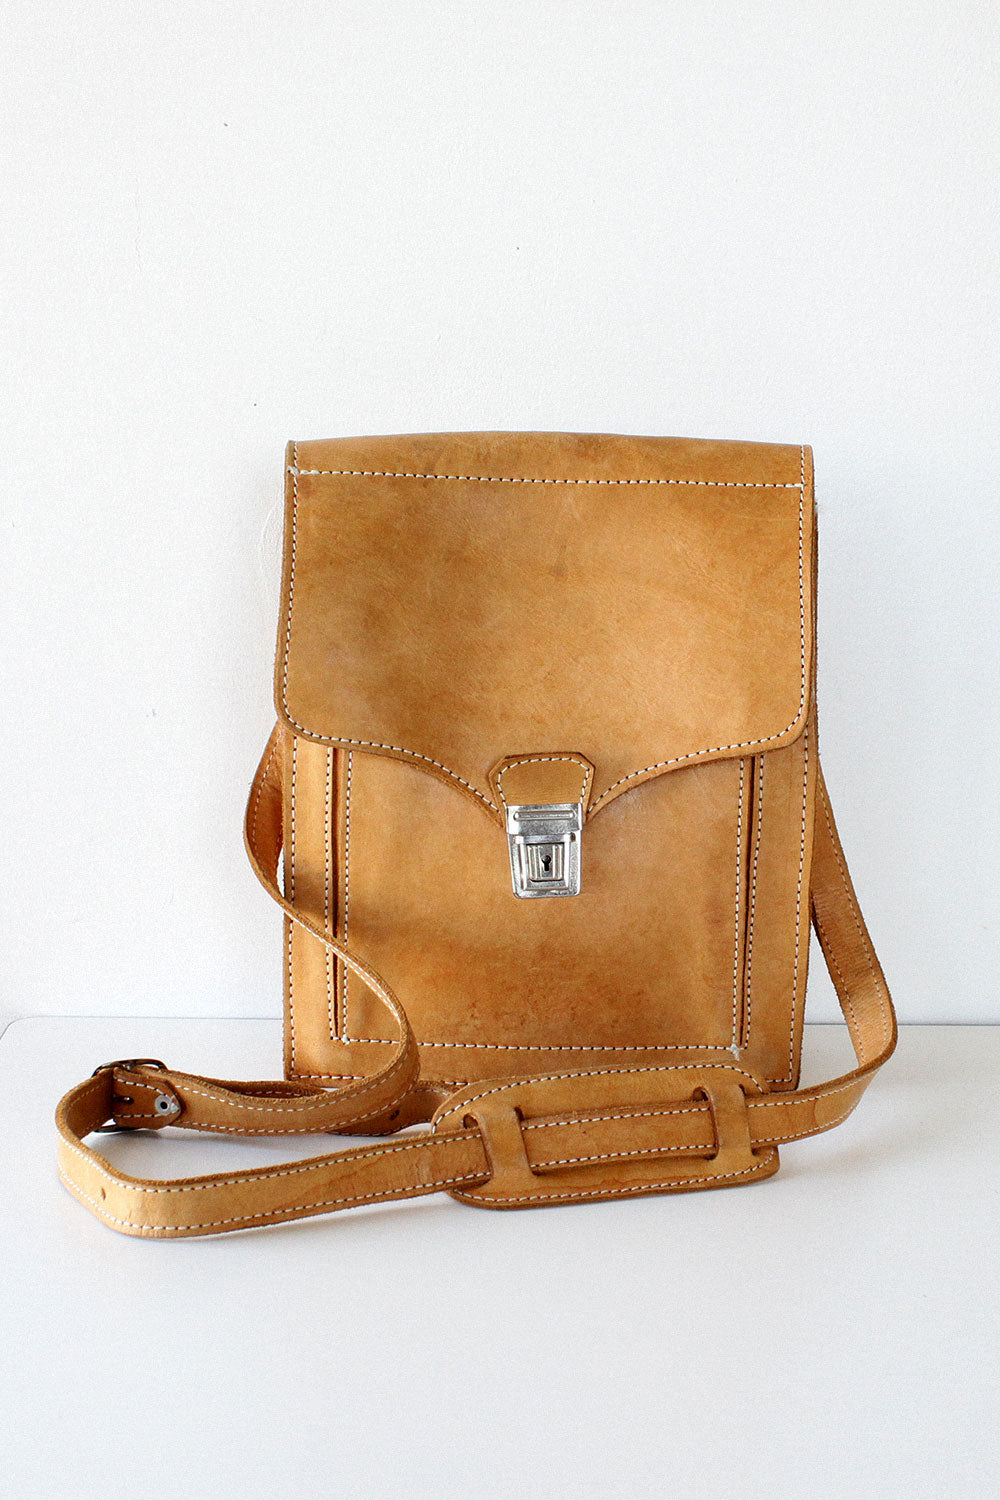 Honey Tan Leather Satchel